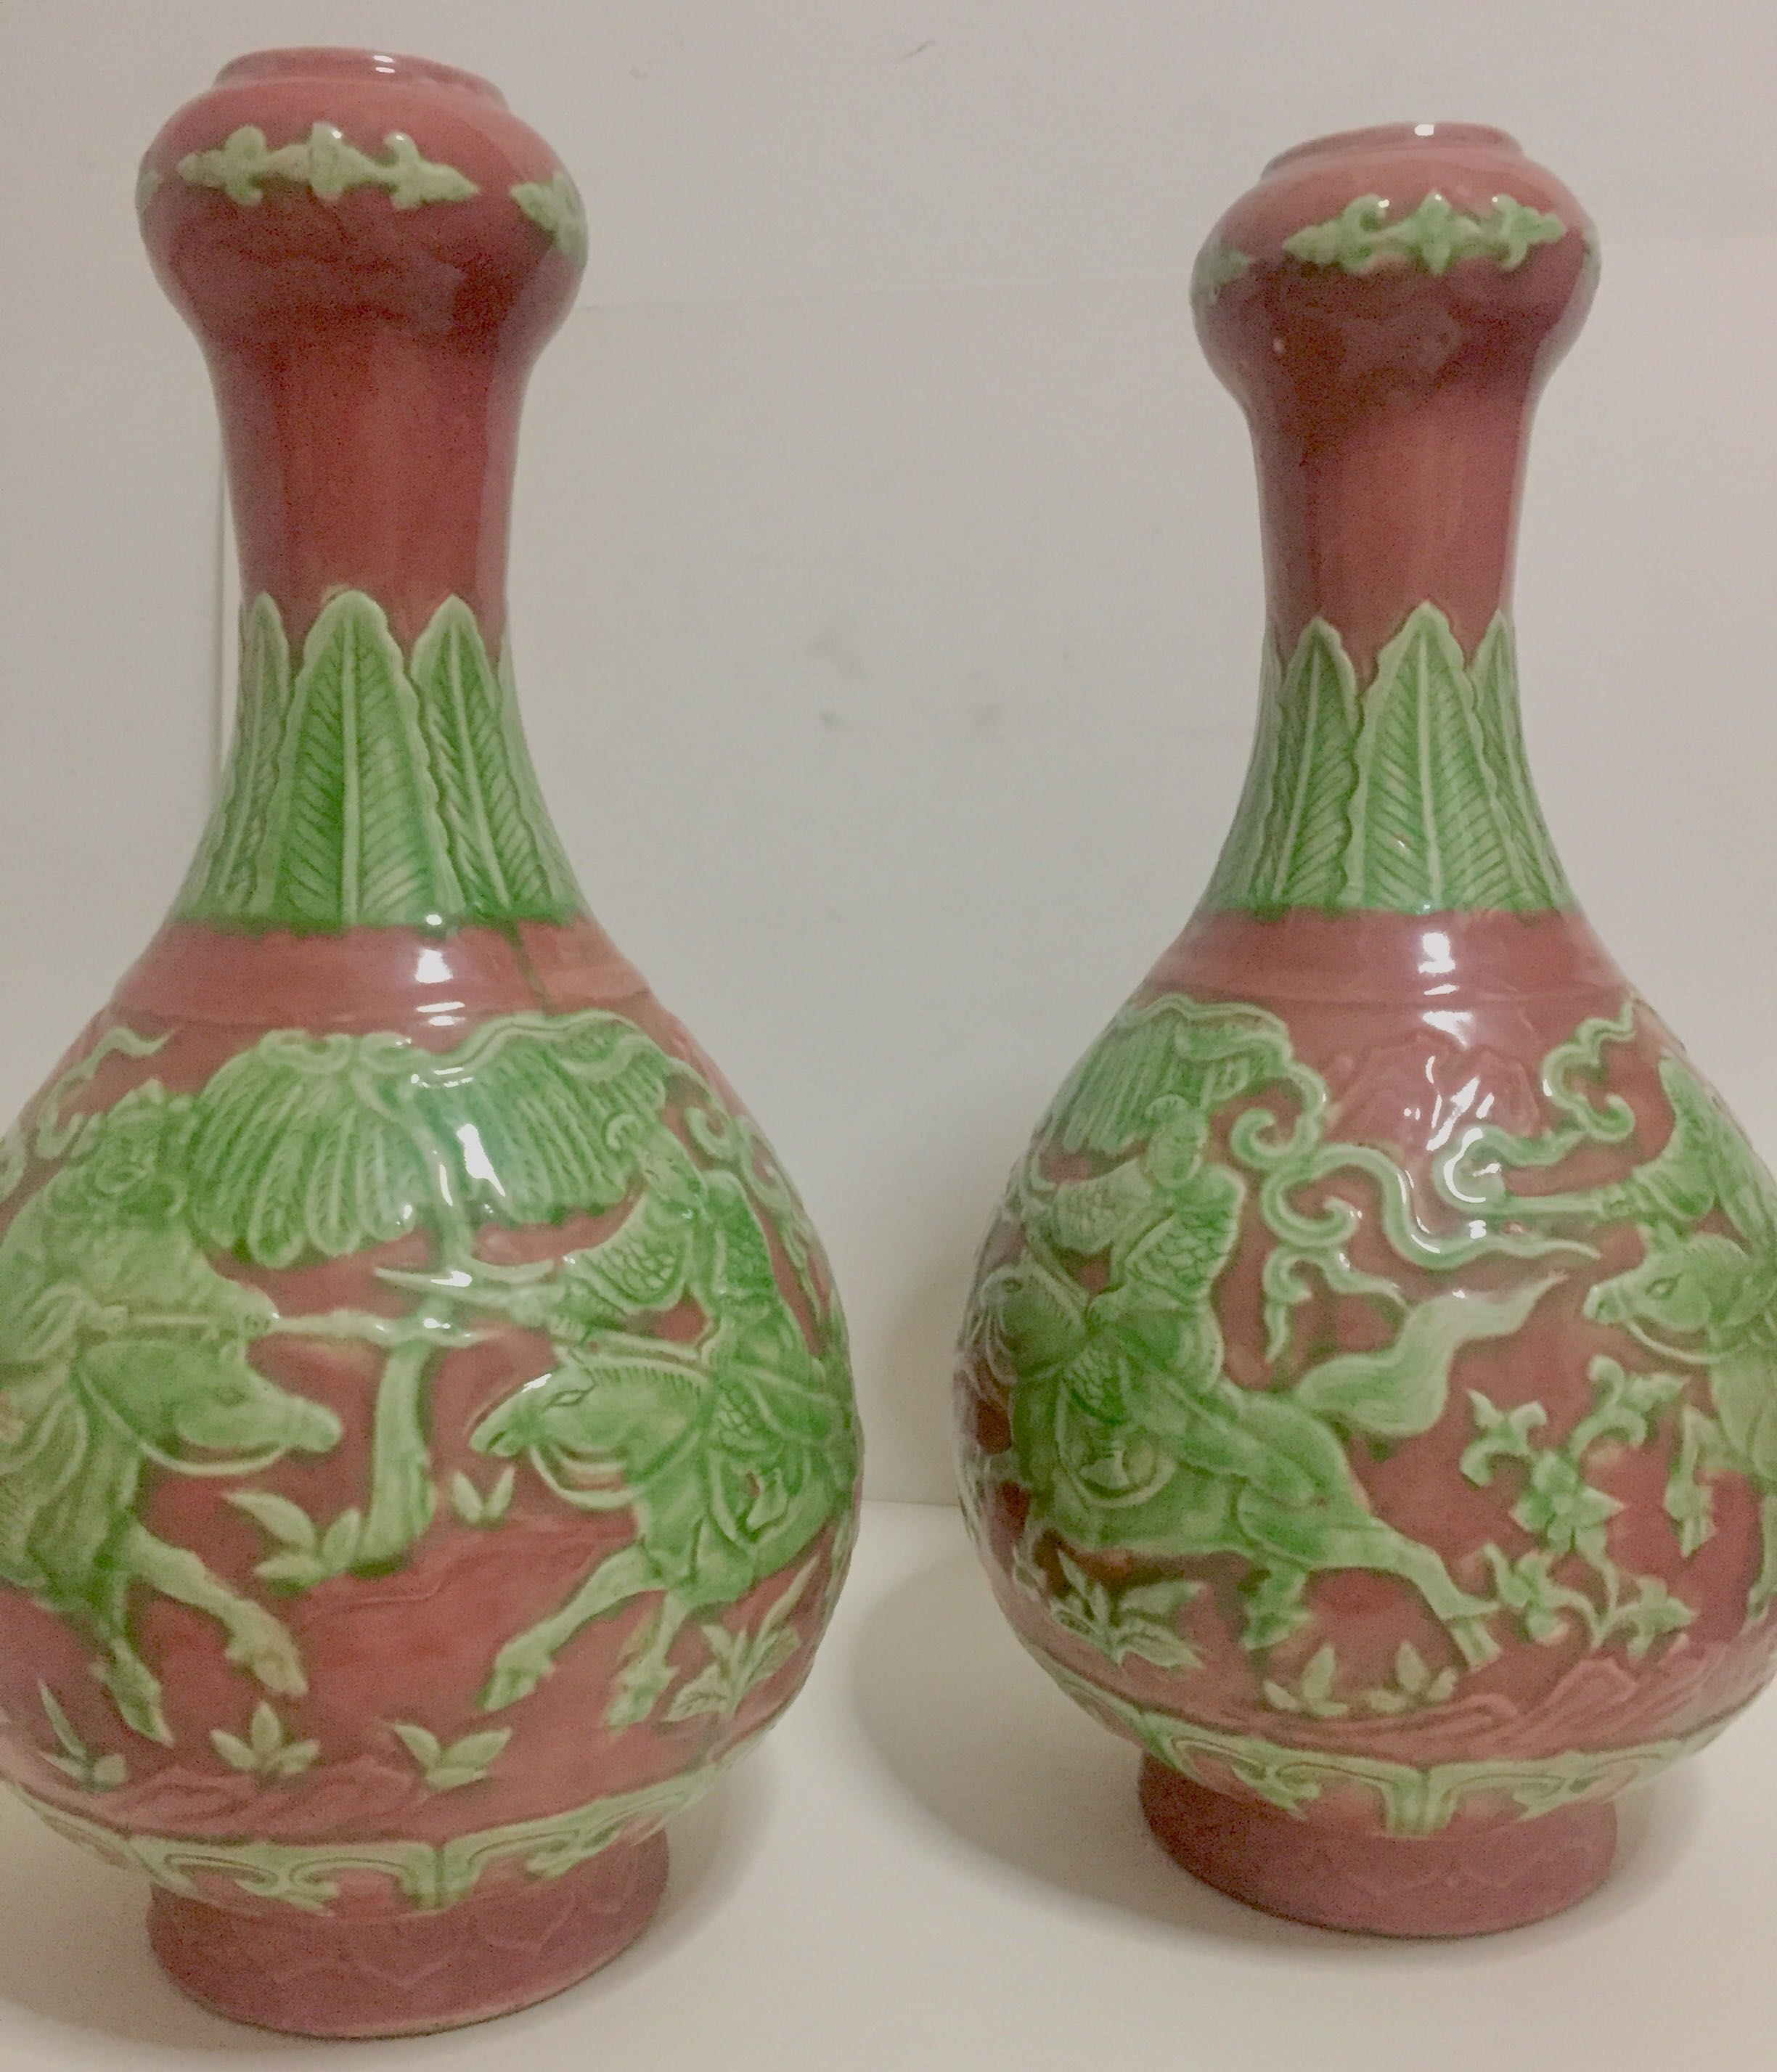 Pair of XXL Chinese Vases with Warriors on Horses